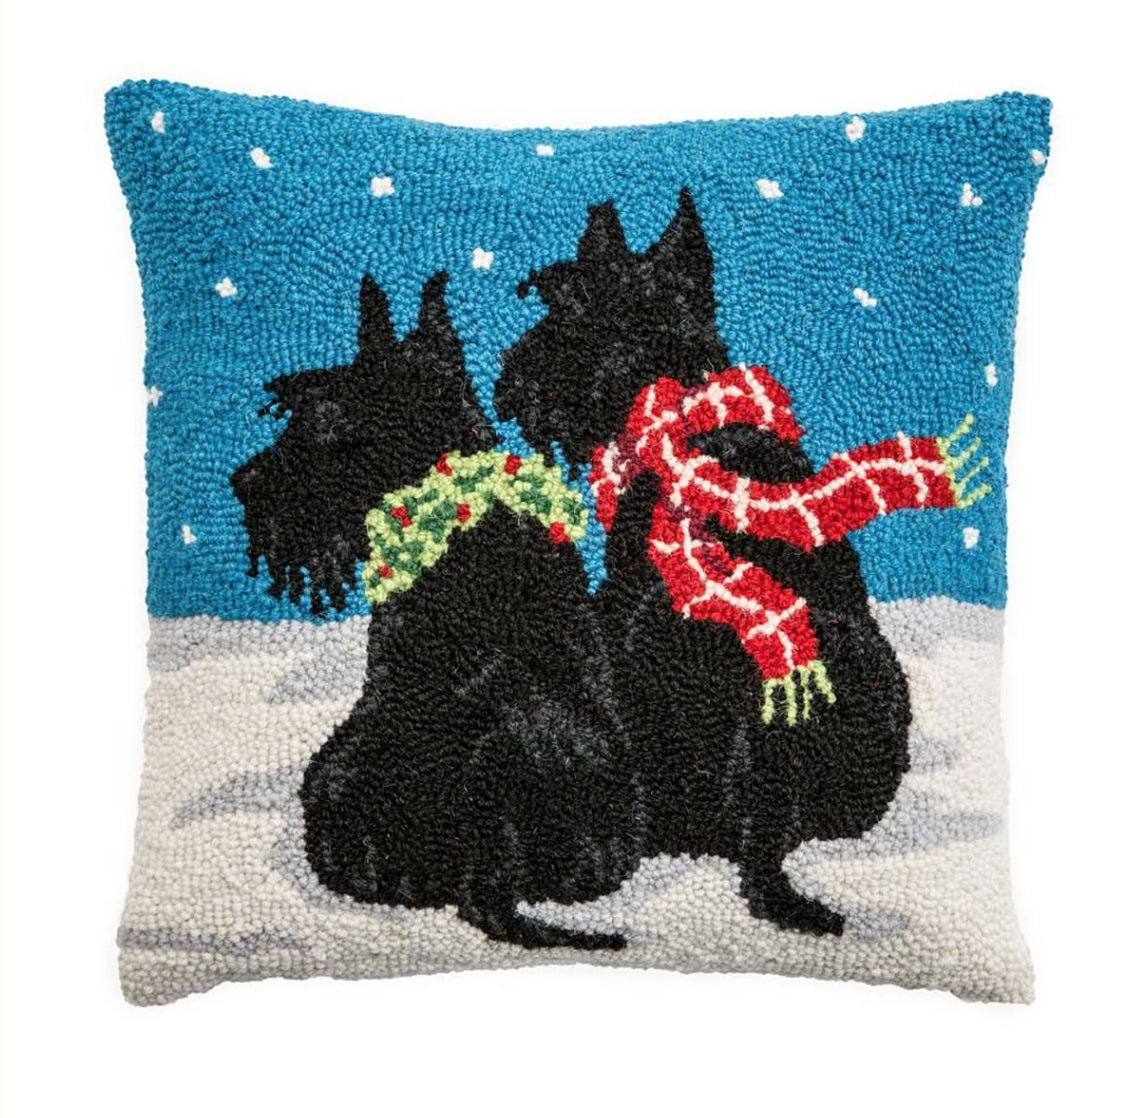 New Hooked Wool Holiday Pillows